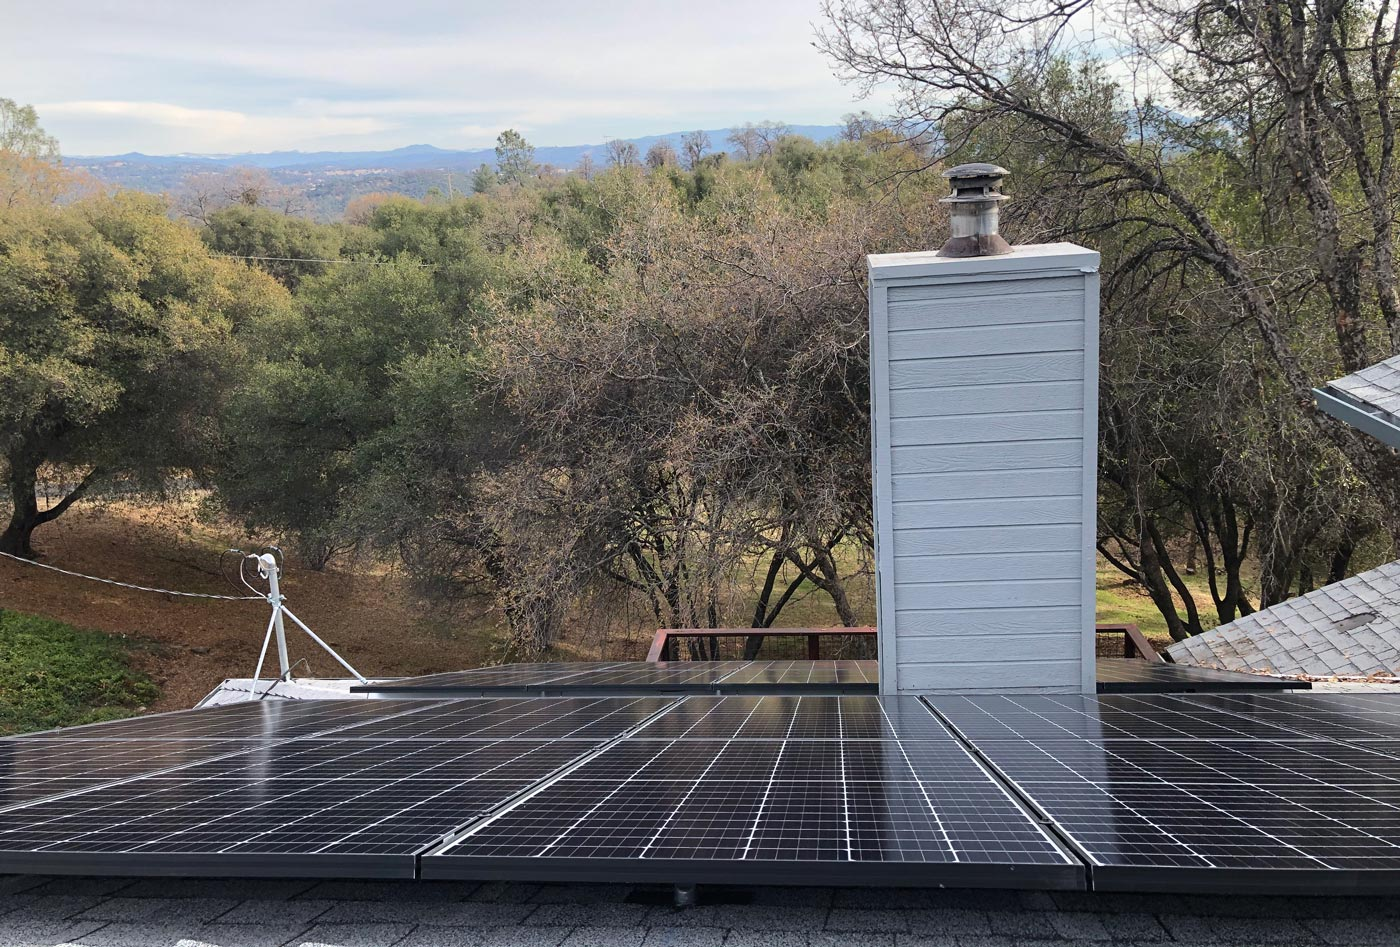 SolarWorx Energy solar installation on roof in Tuolumne County: Local Solar Installers